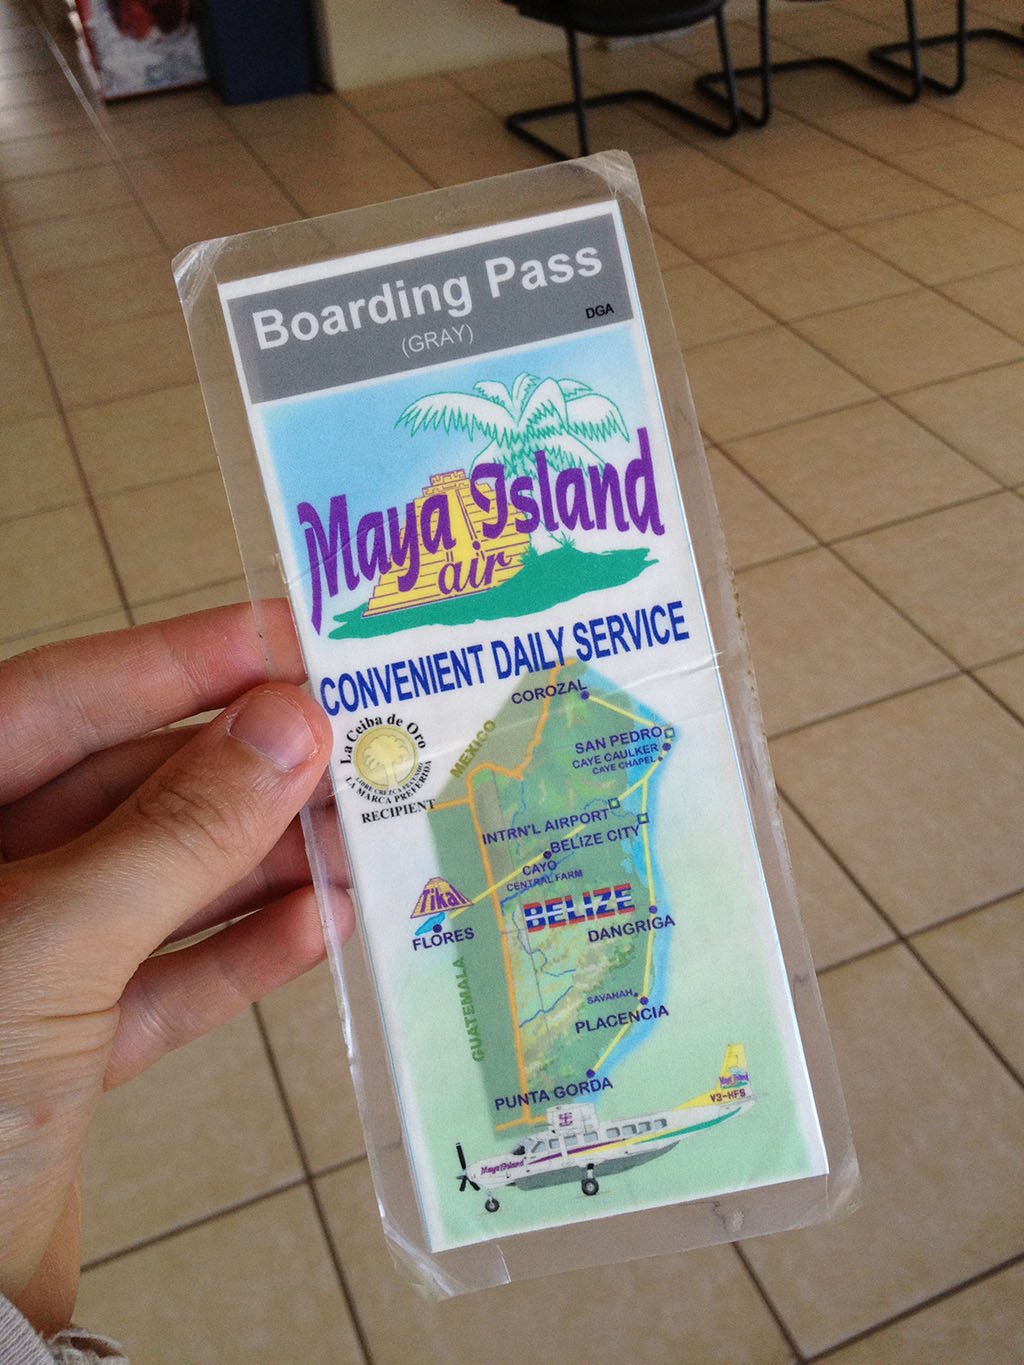 Maya Island Air boarding pass (front)